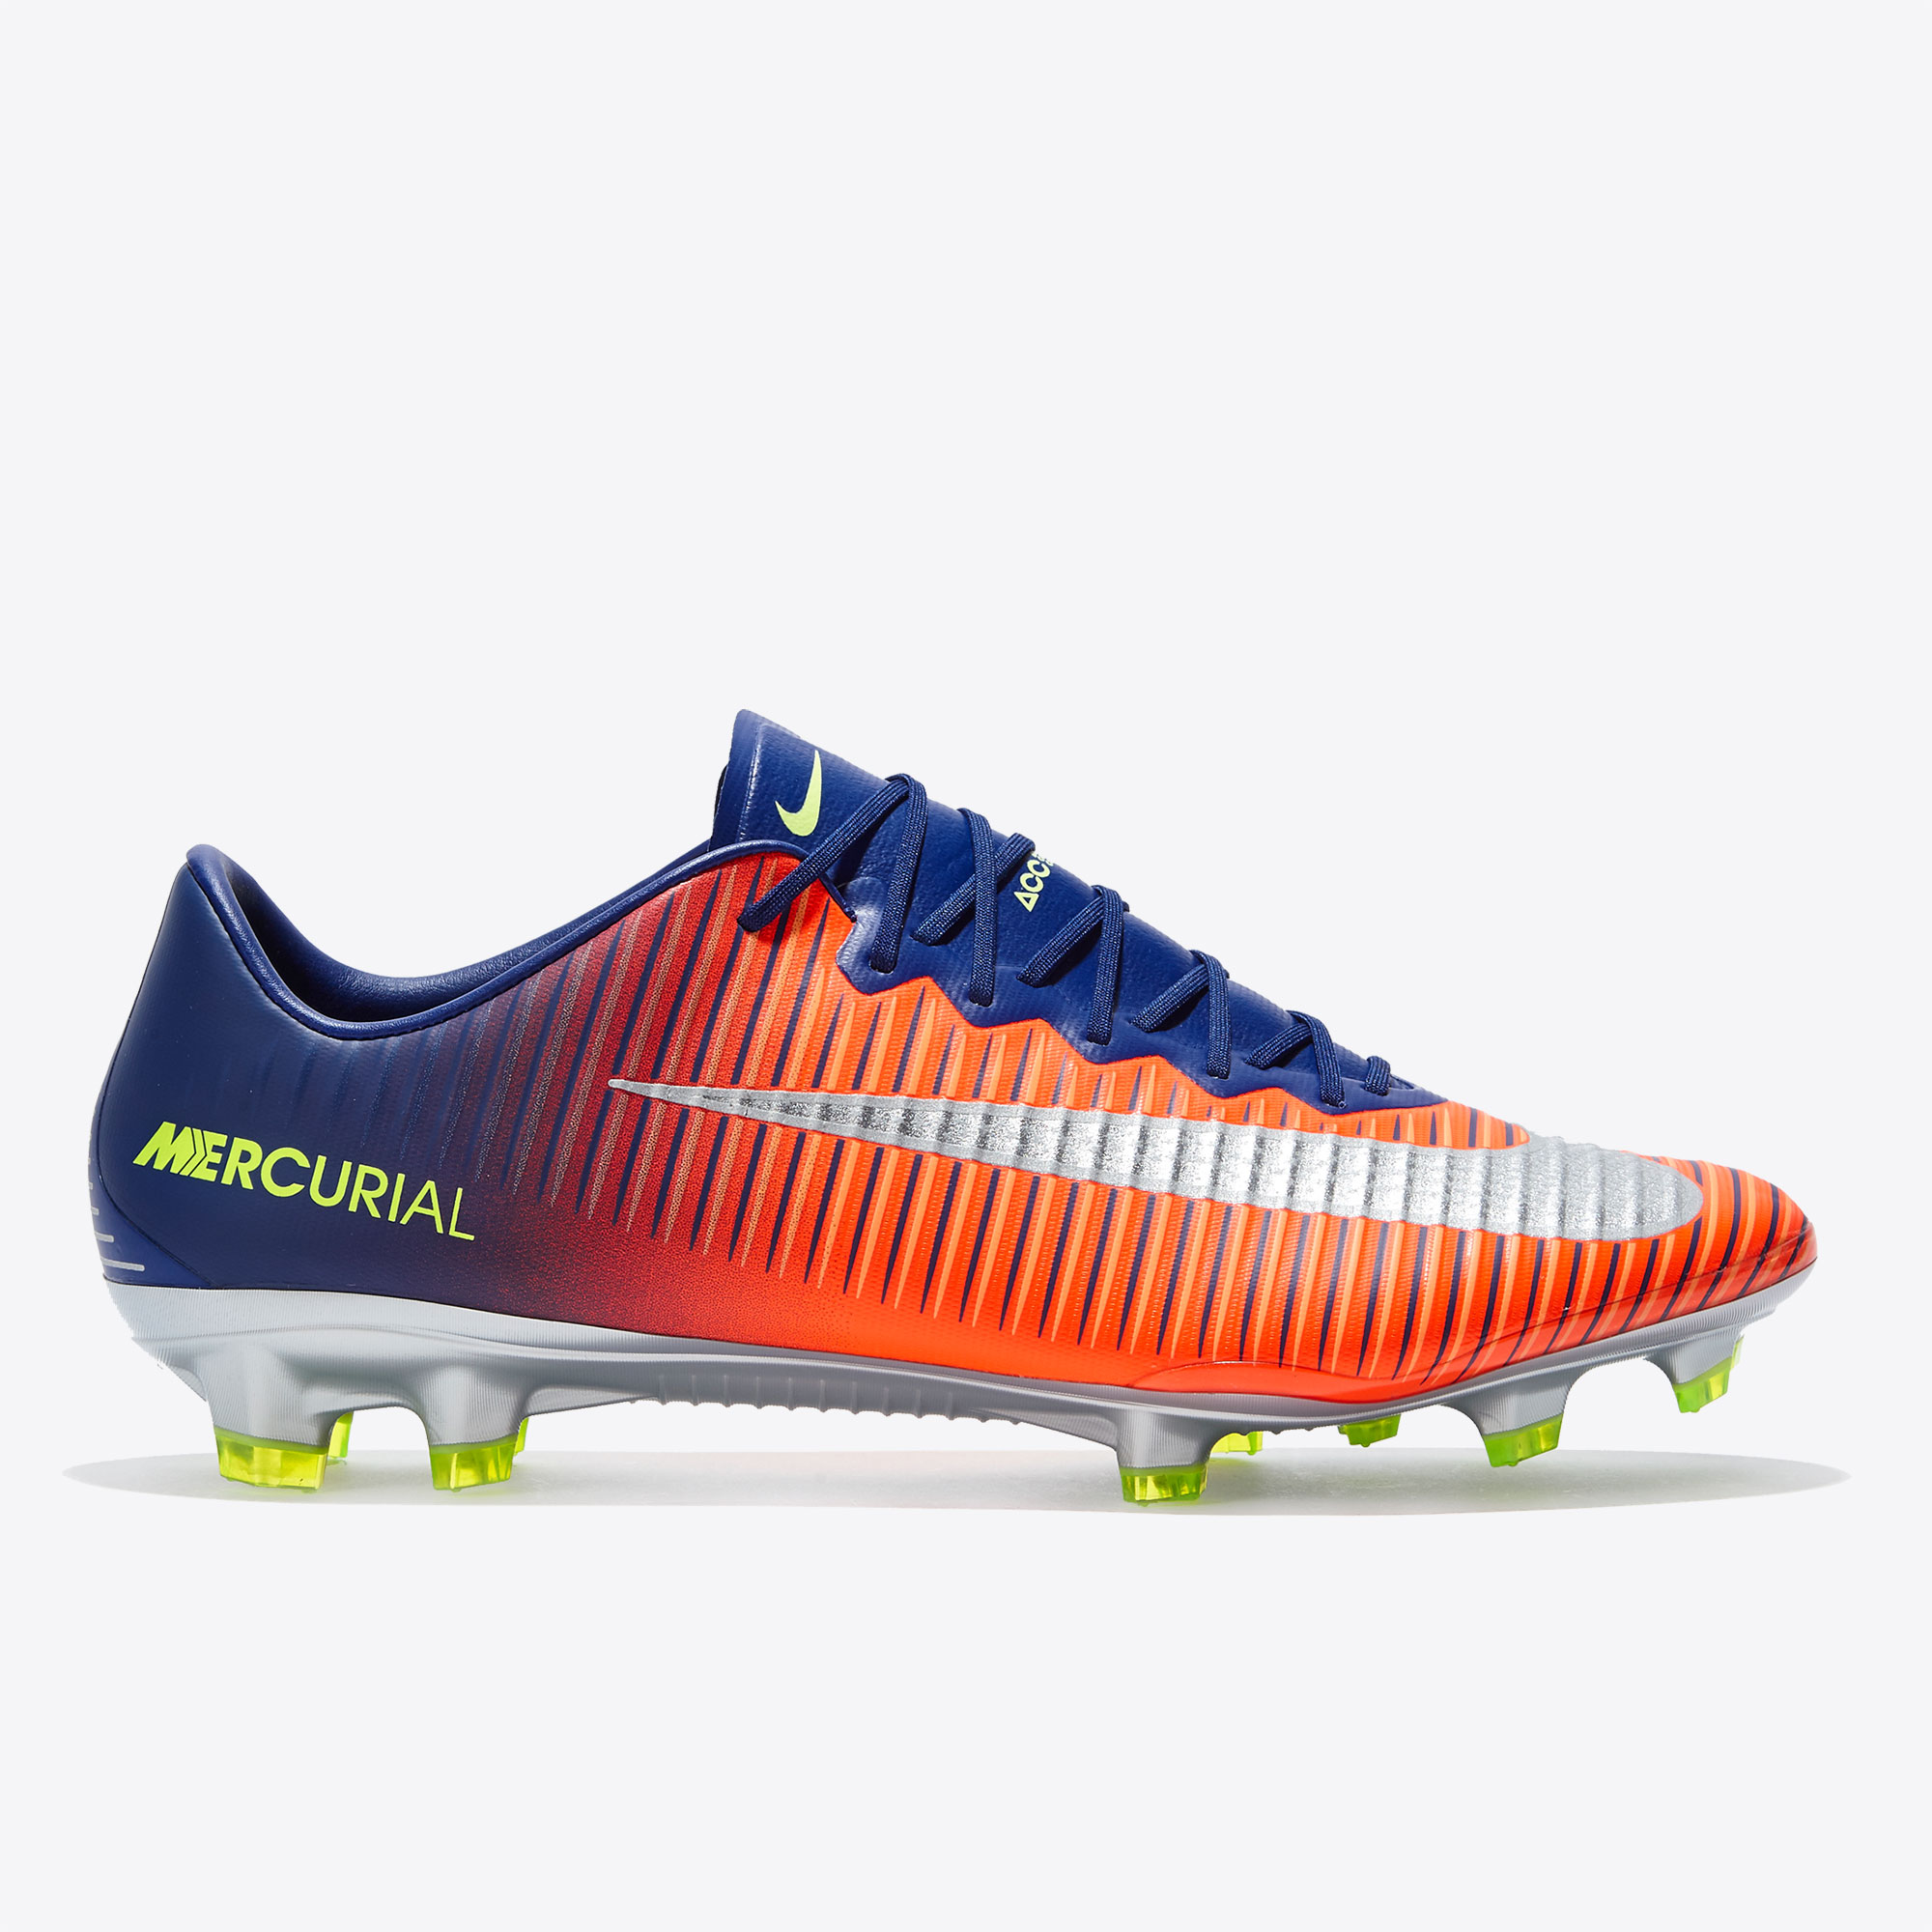 Nike Mercurial Vapor XI FG Deep Royal Blue/C